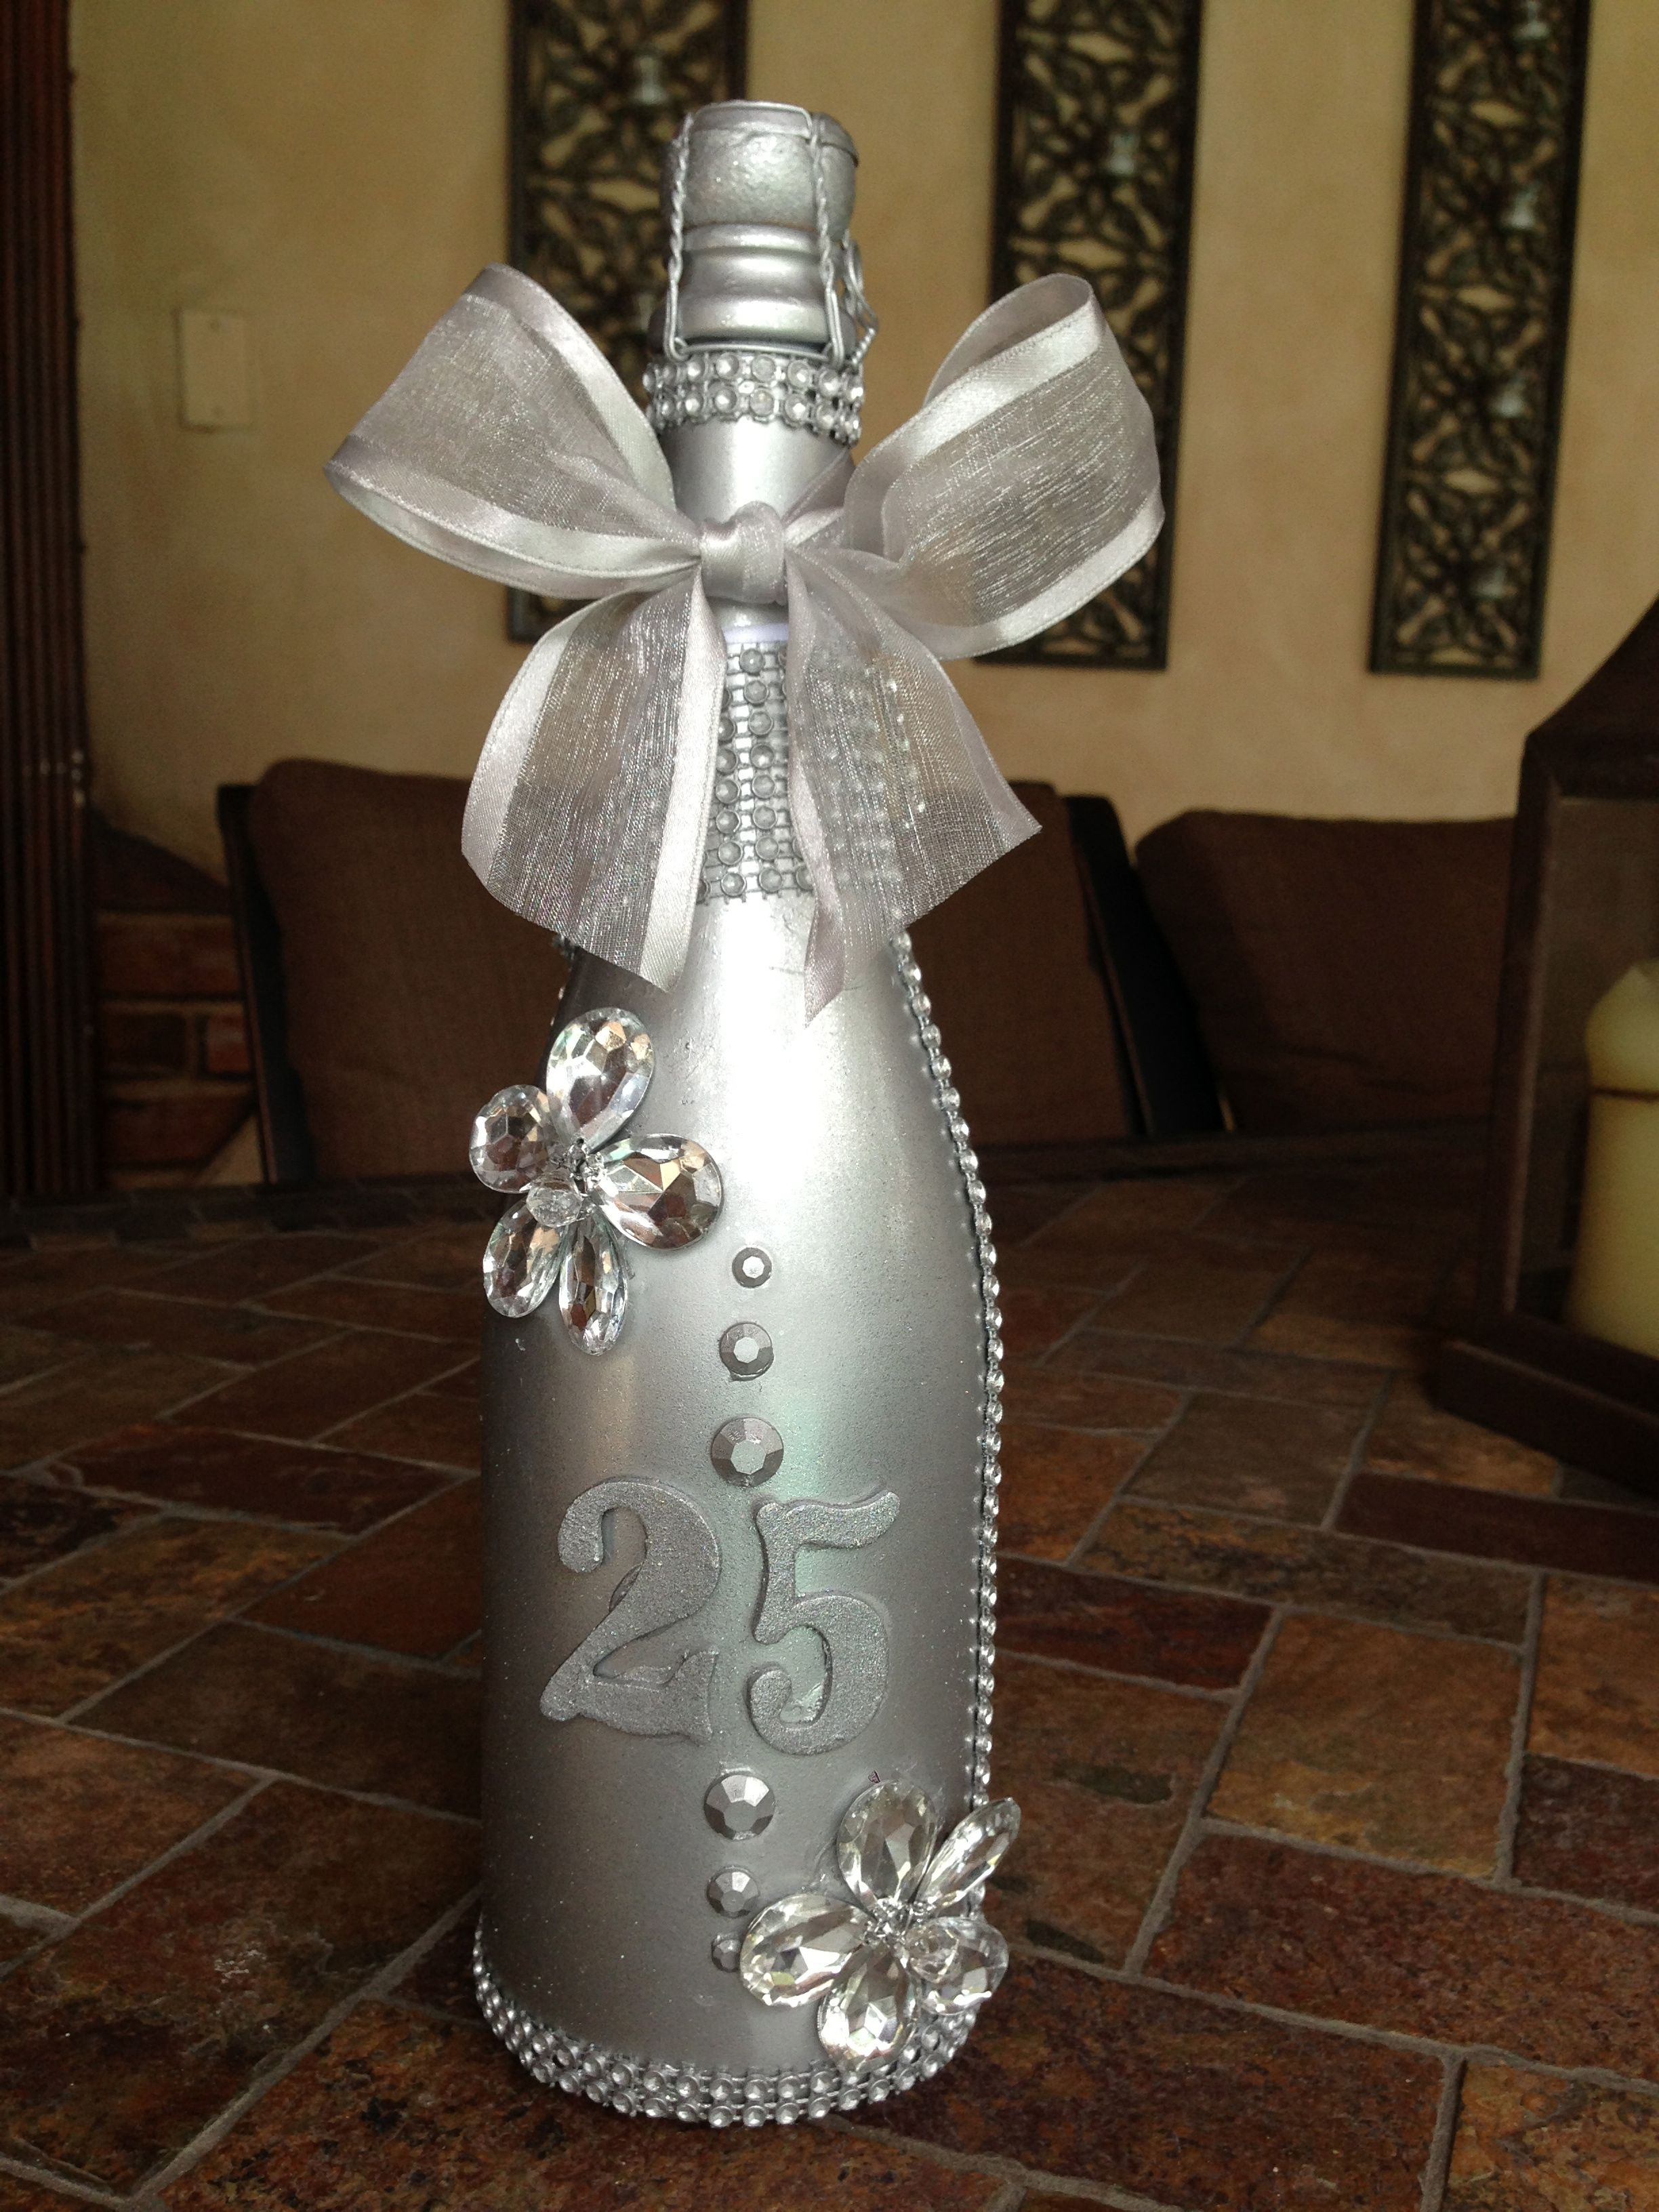 order this unique and memorable gift for a 25th anniversary at lizet